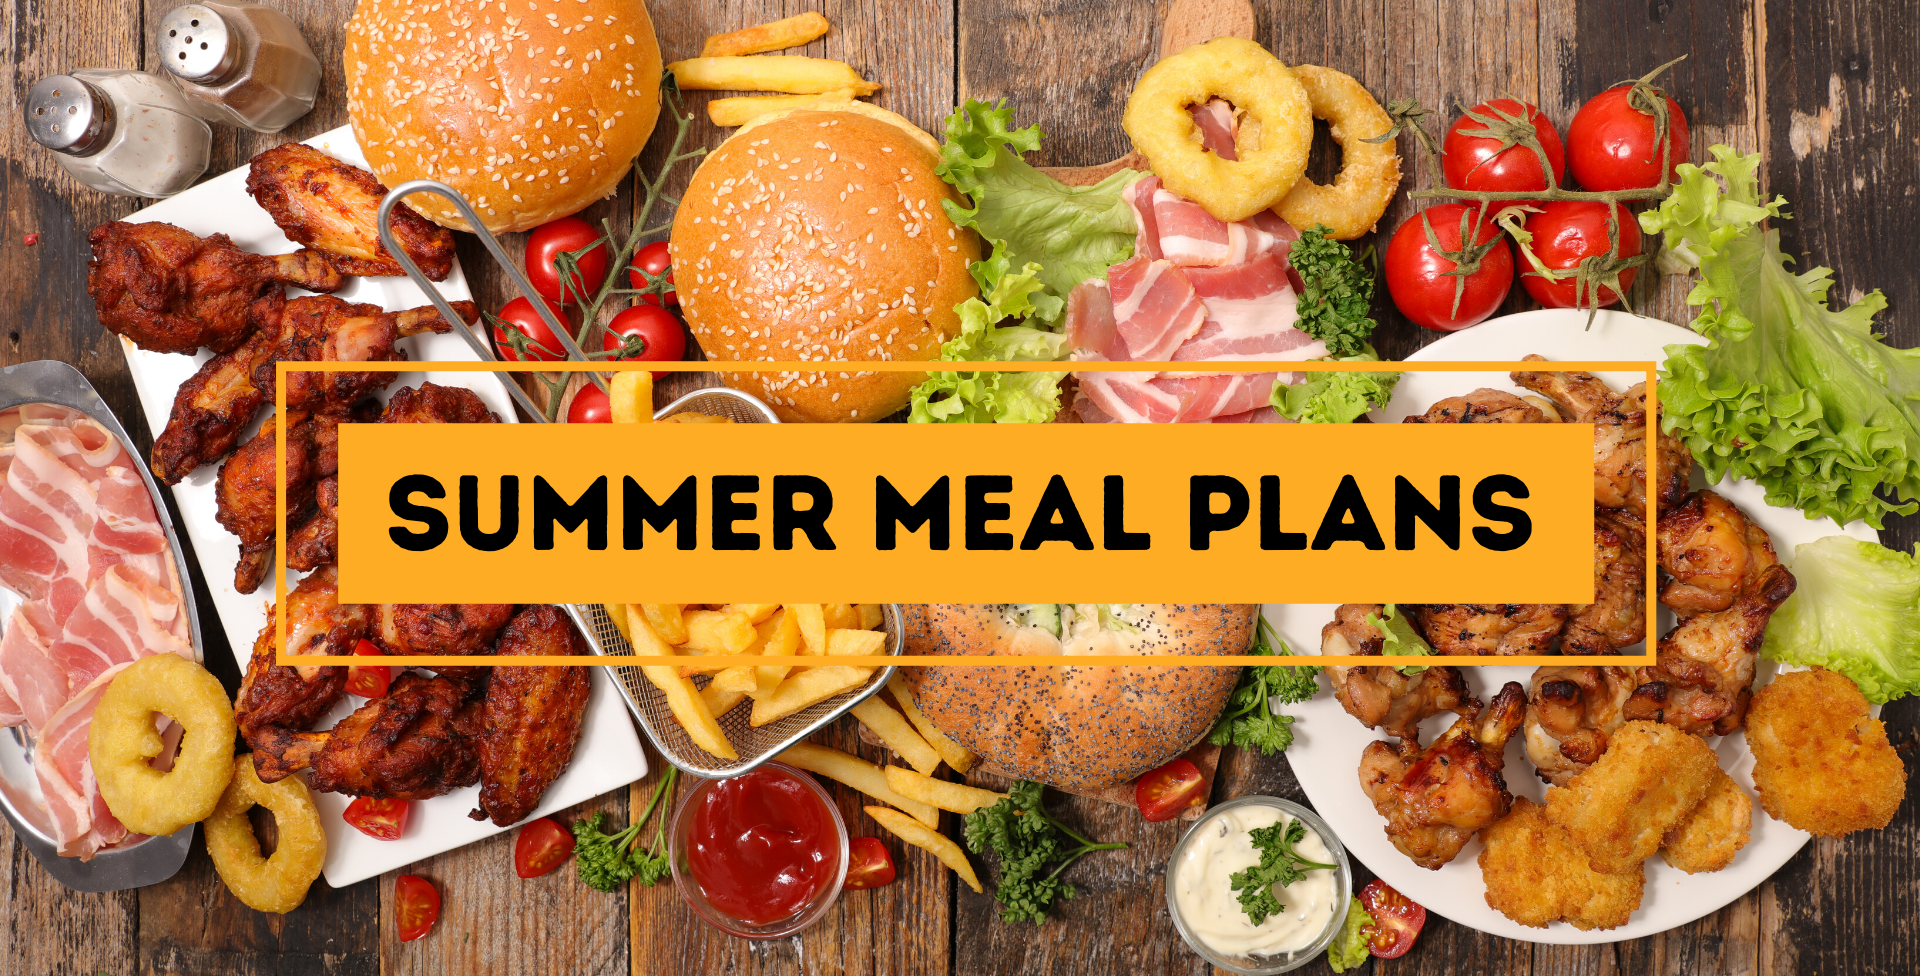 Summer Meal Plans